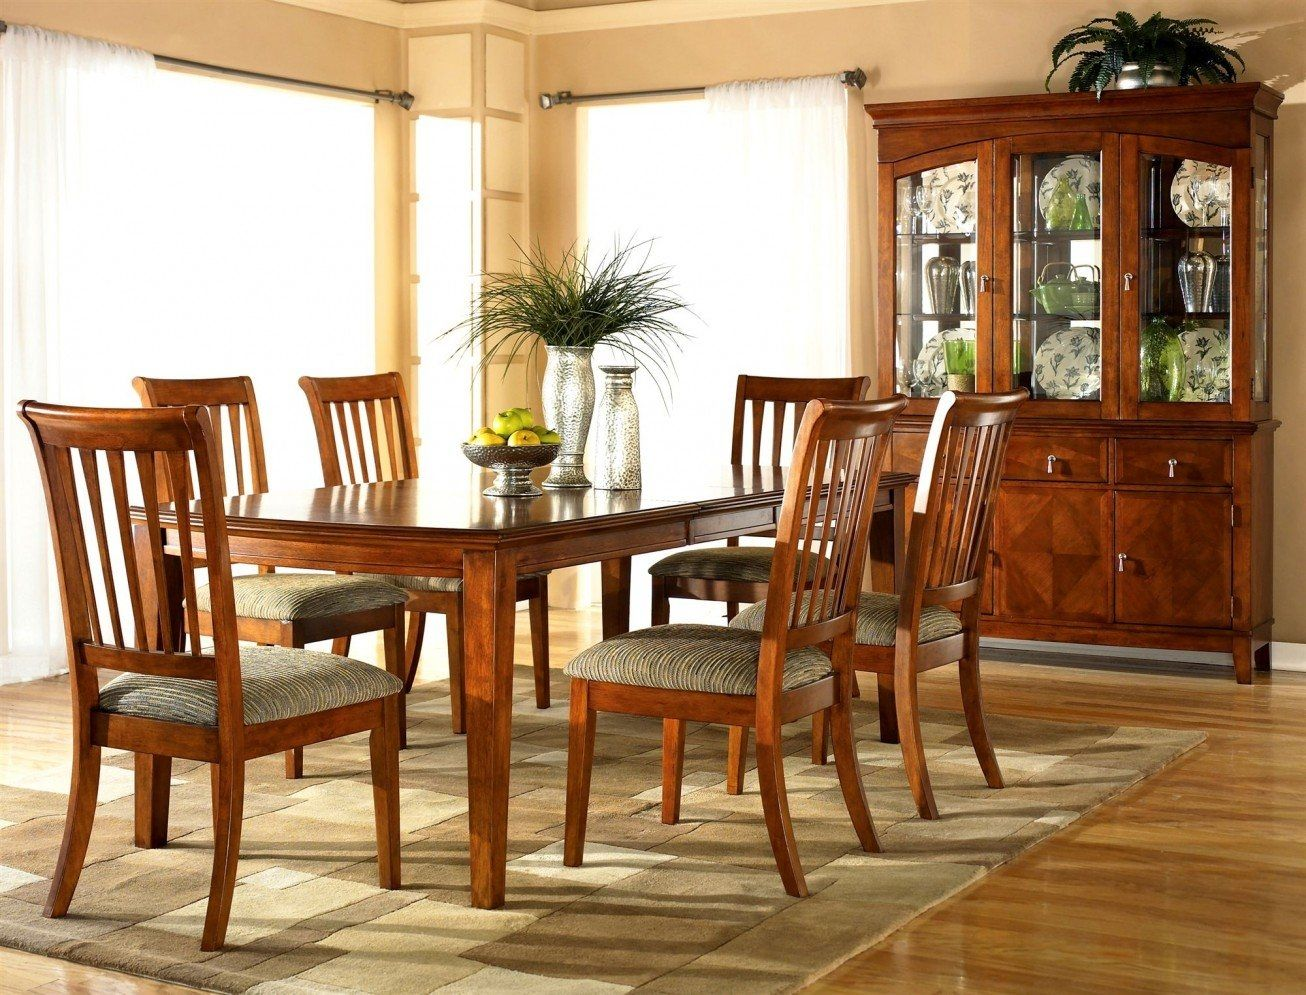 picturesque cherry wood dining room set chairs decor ideas ...